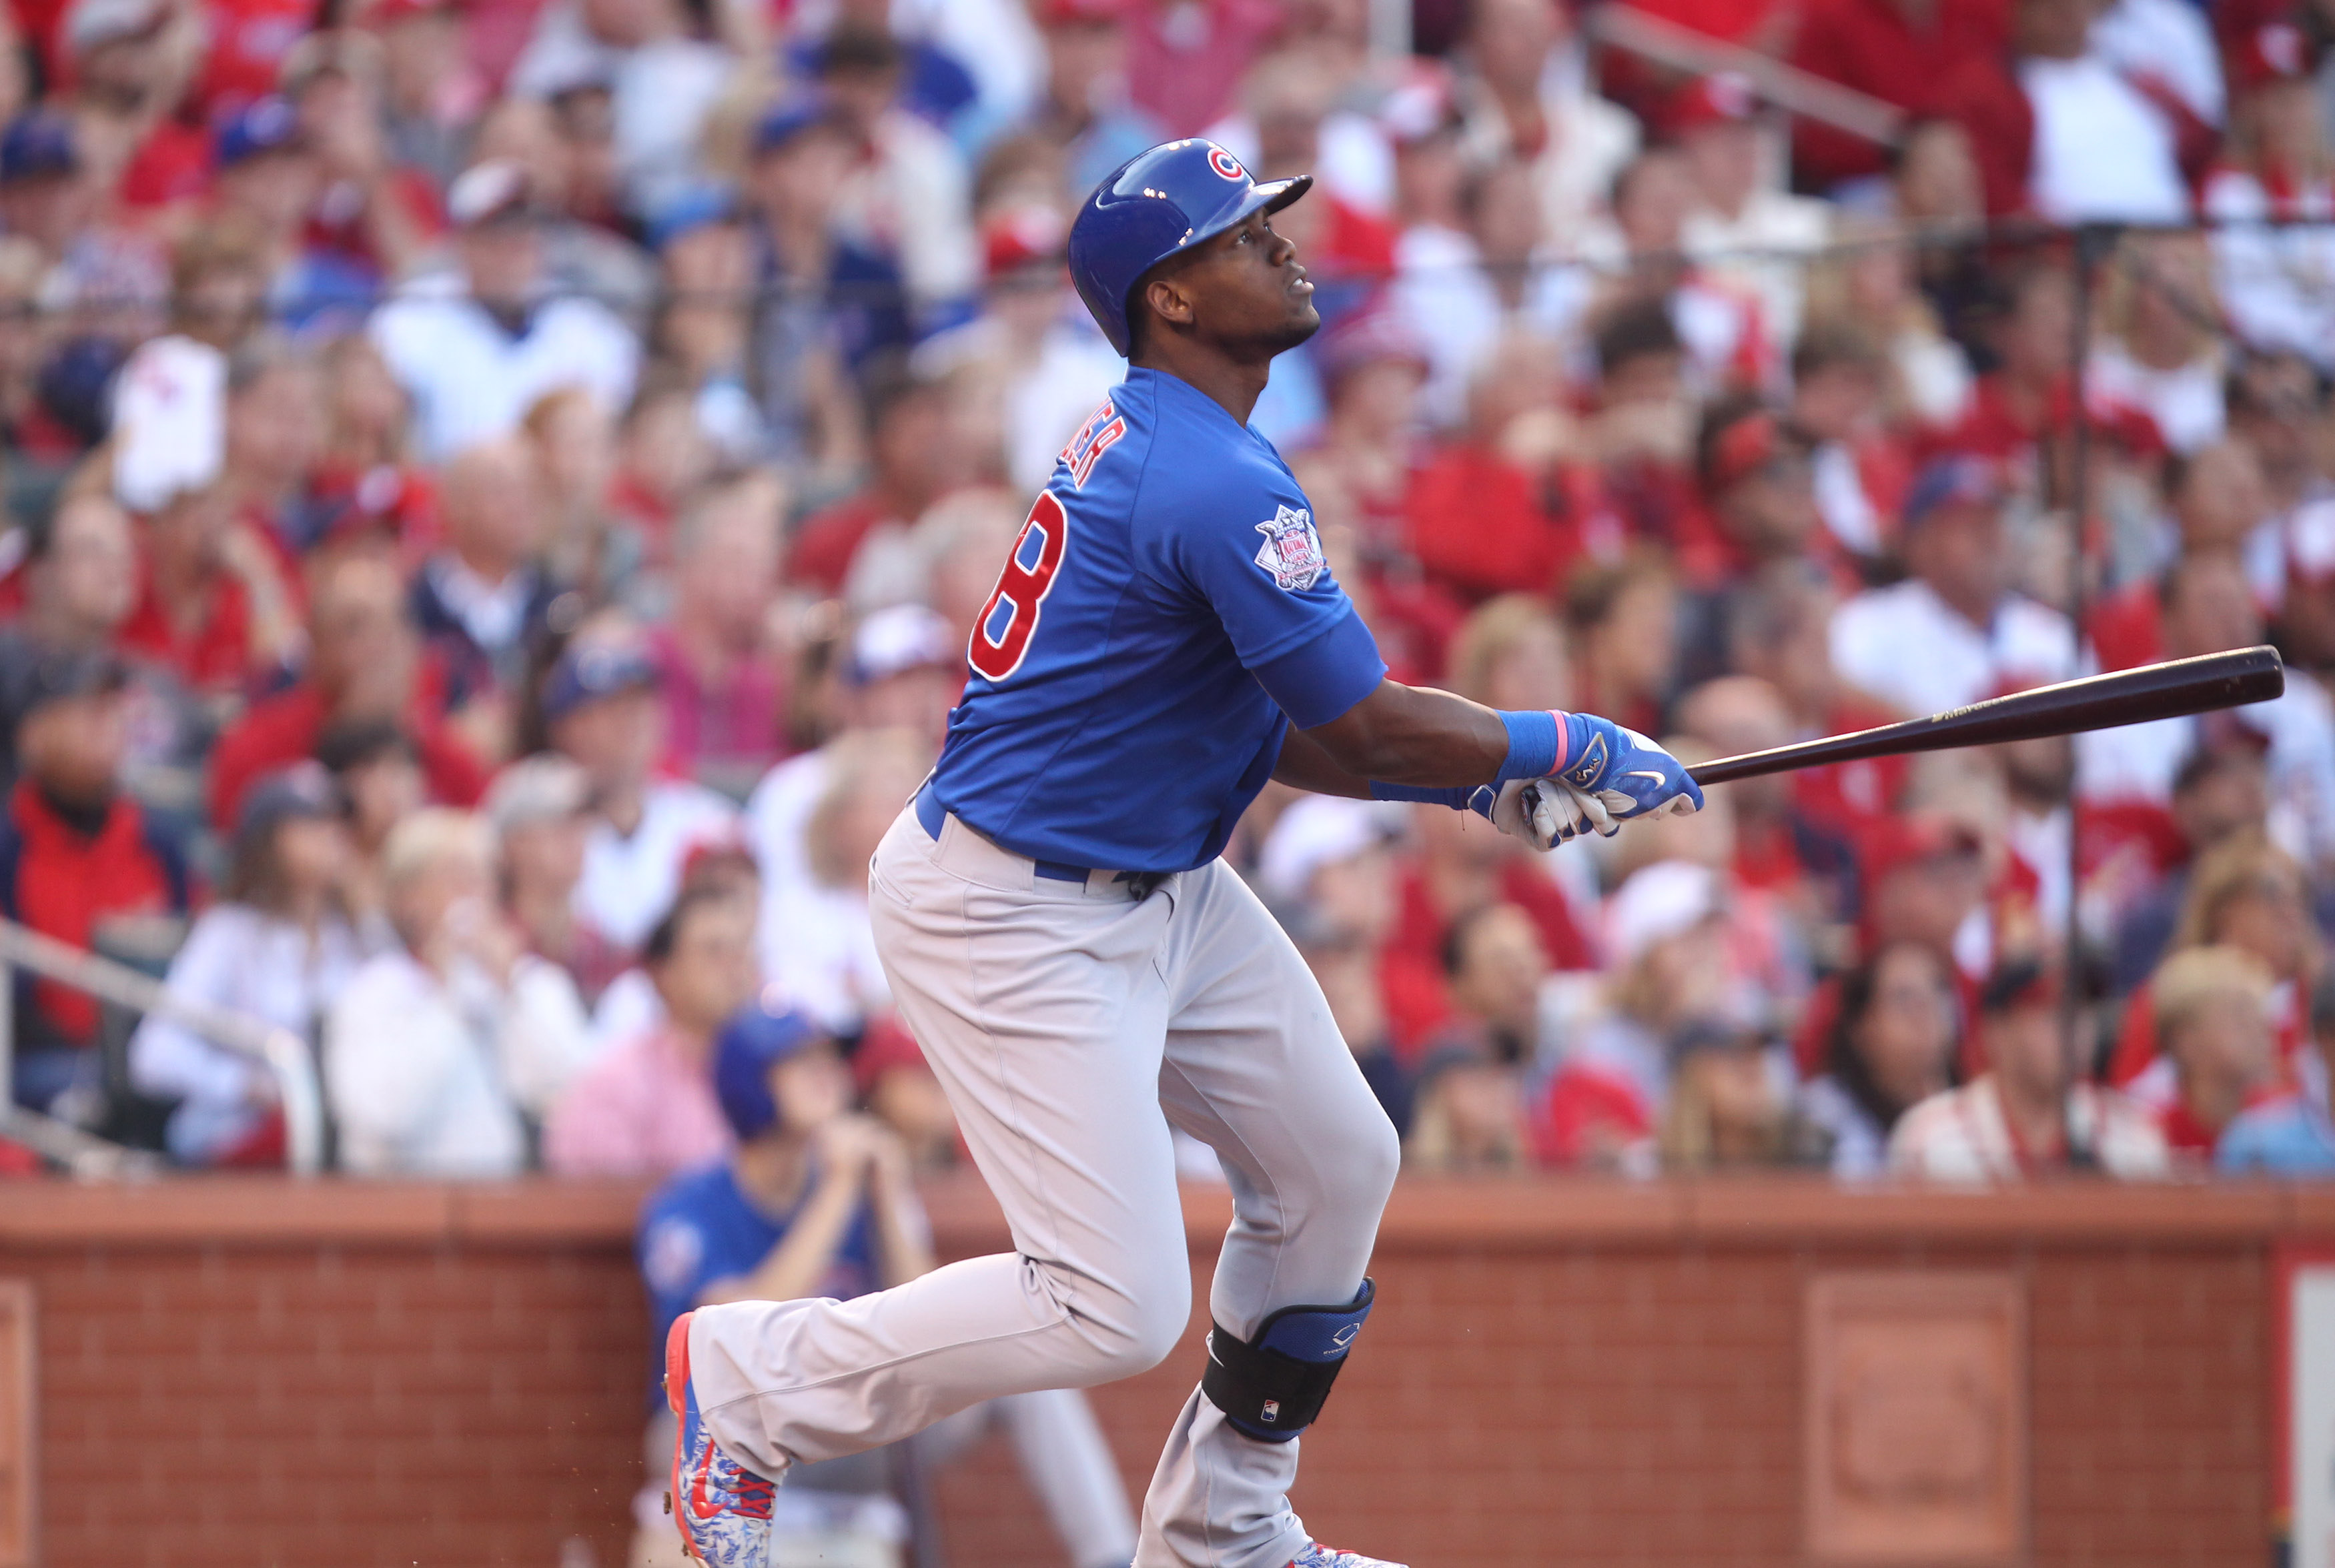 Tigers, Sox & Caps All Fall; Cubs Sweep Brewers